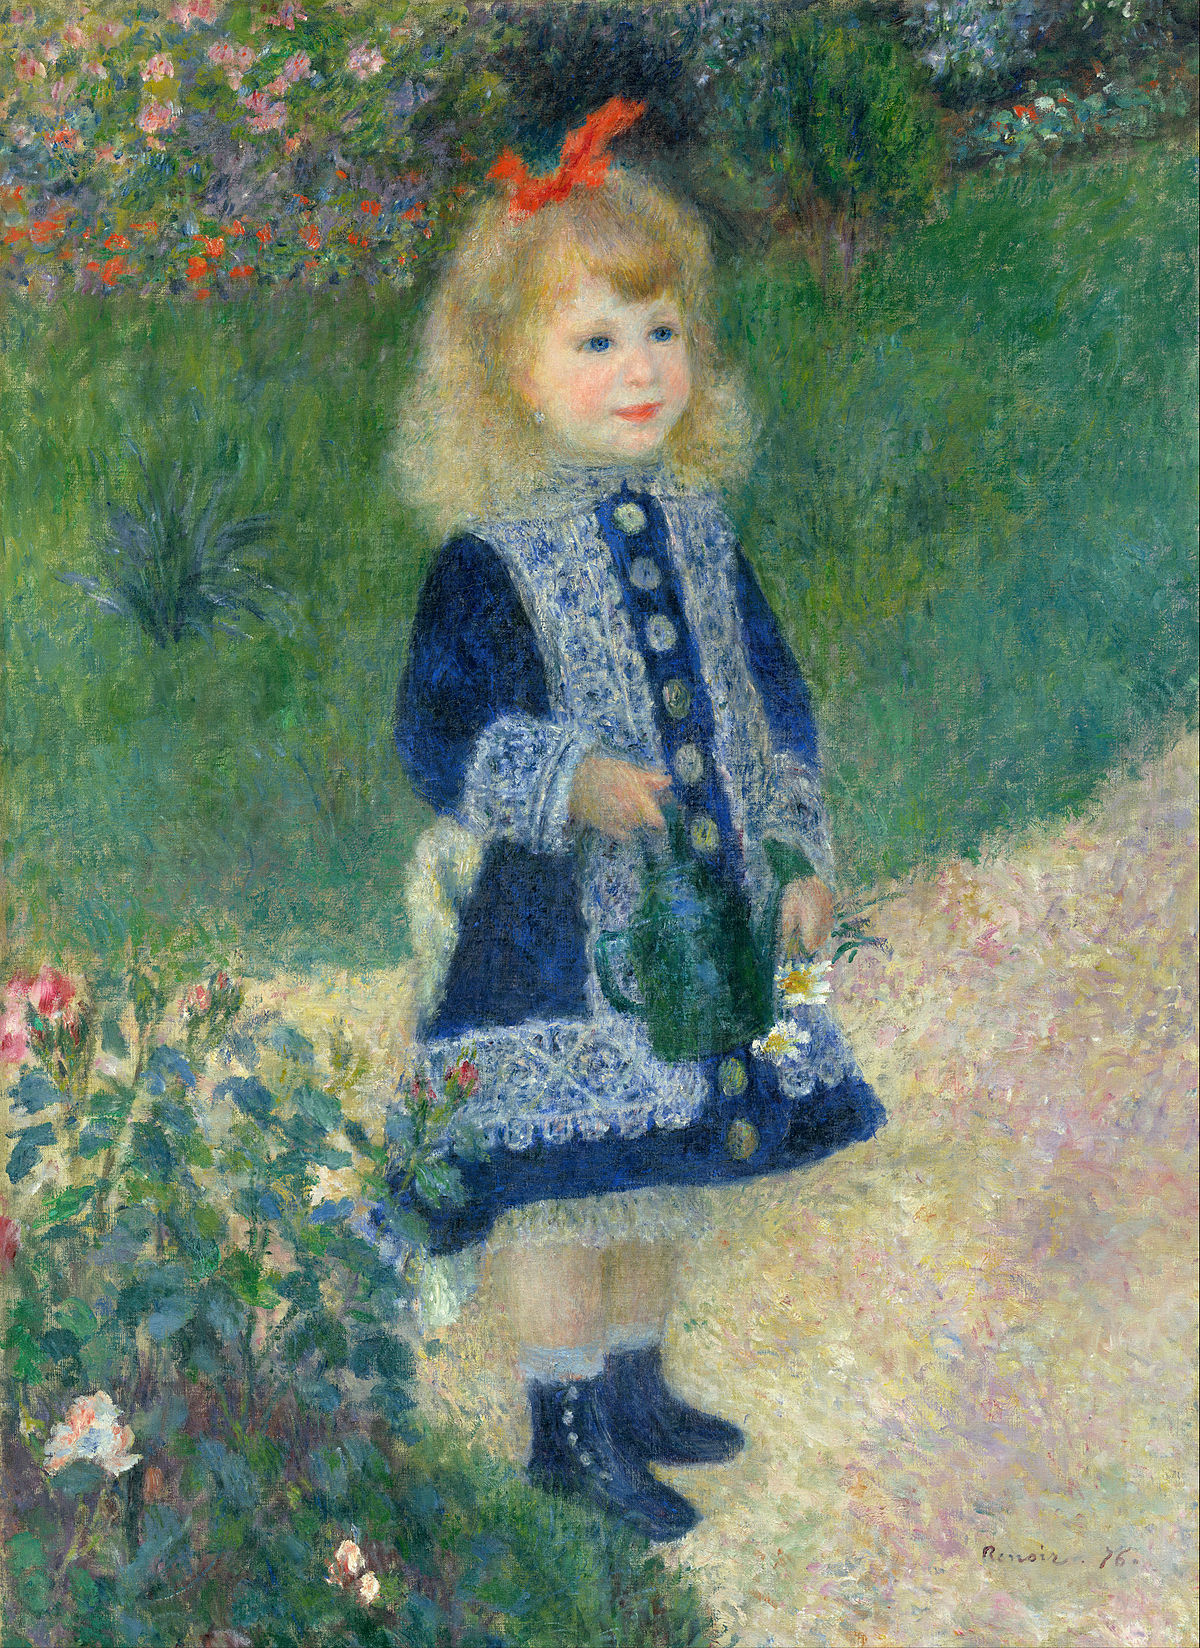 1200px-Auguste_Renoir_-_A_Girl_with_a_Wa